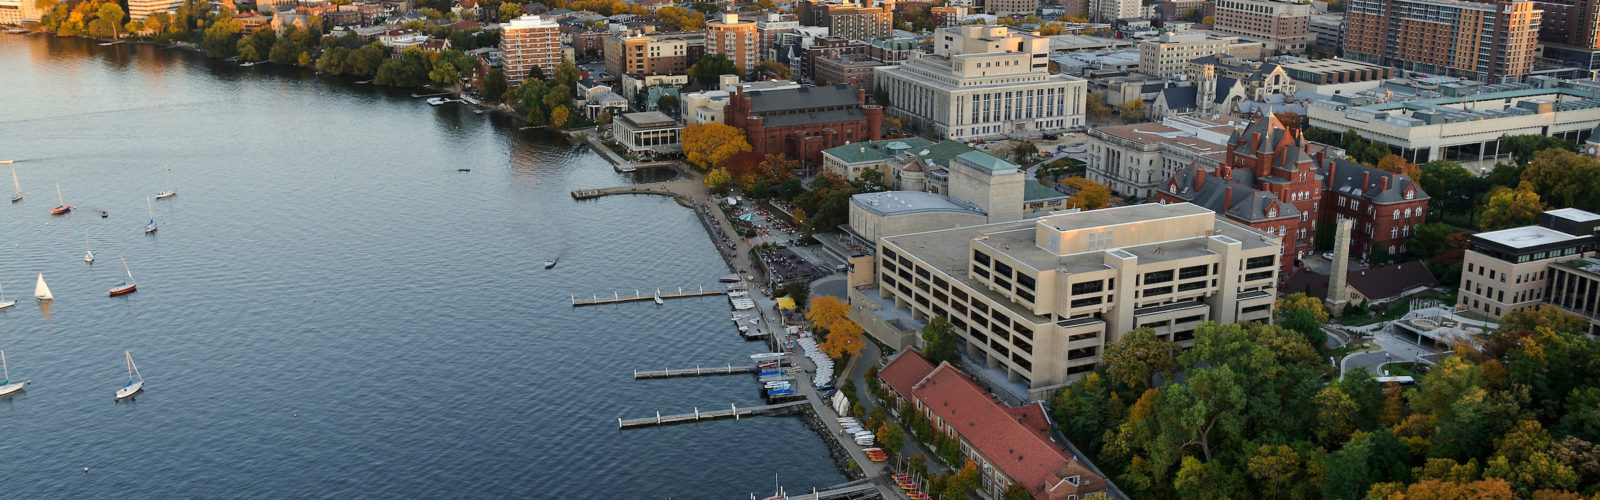 The Lake Mendota shoreline is pictured in an aerial view of the University of Wisconsin-Madison campus